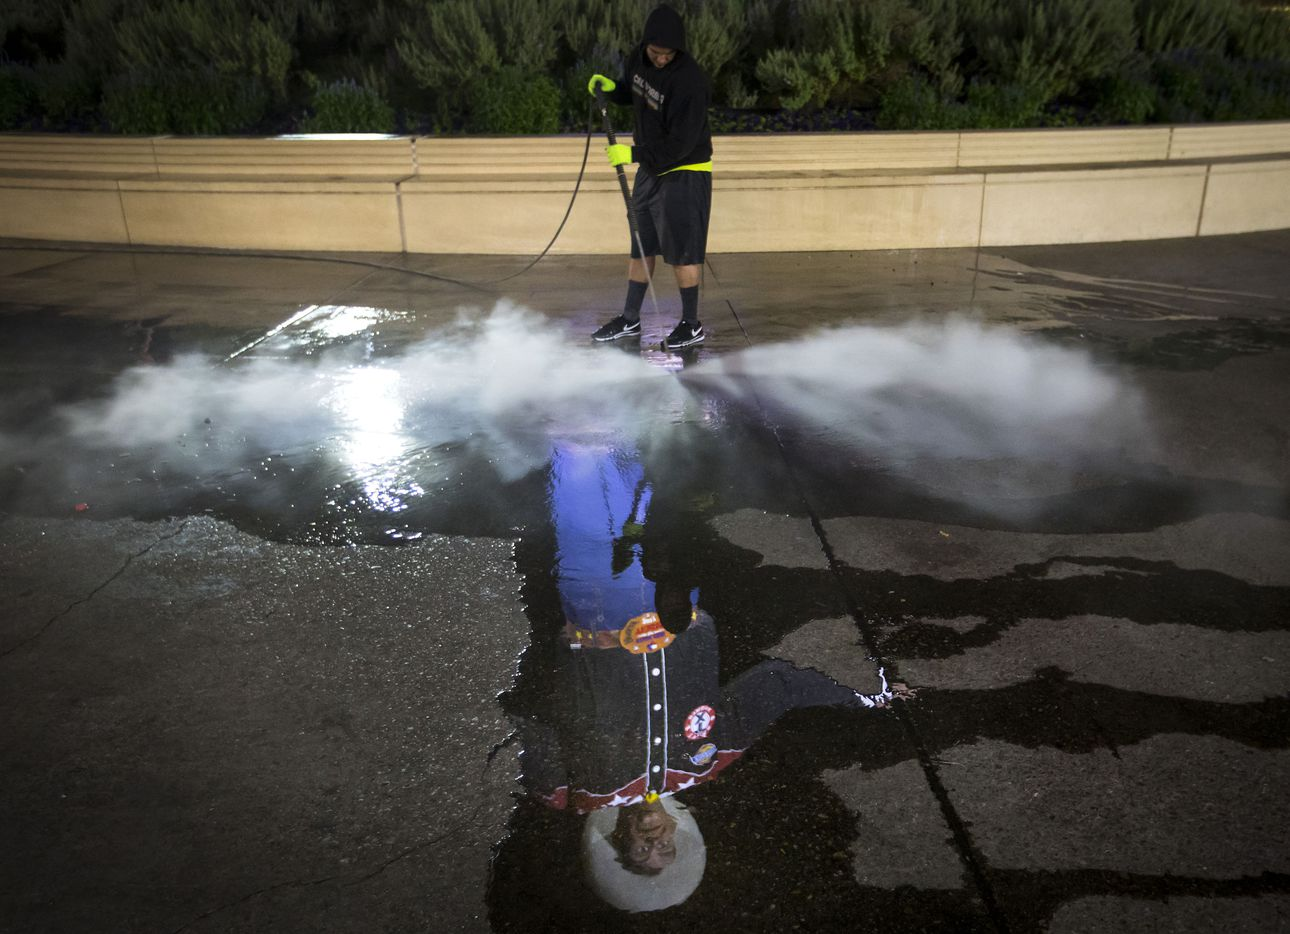 """Francisco Gallardo, 29, pressure washes the pavement in Big Tex circle in the early morning hours of Oct. 11. He said he spends two to three hours washing off """"gum, mustard, ketchup, Coke, beer ..."""""""